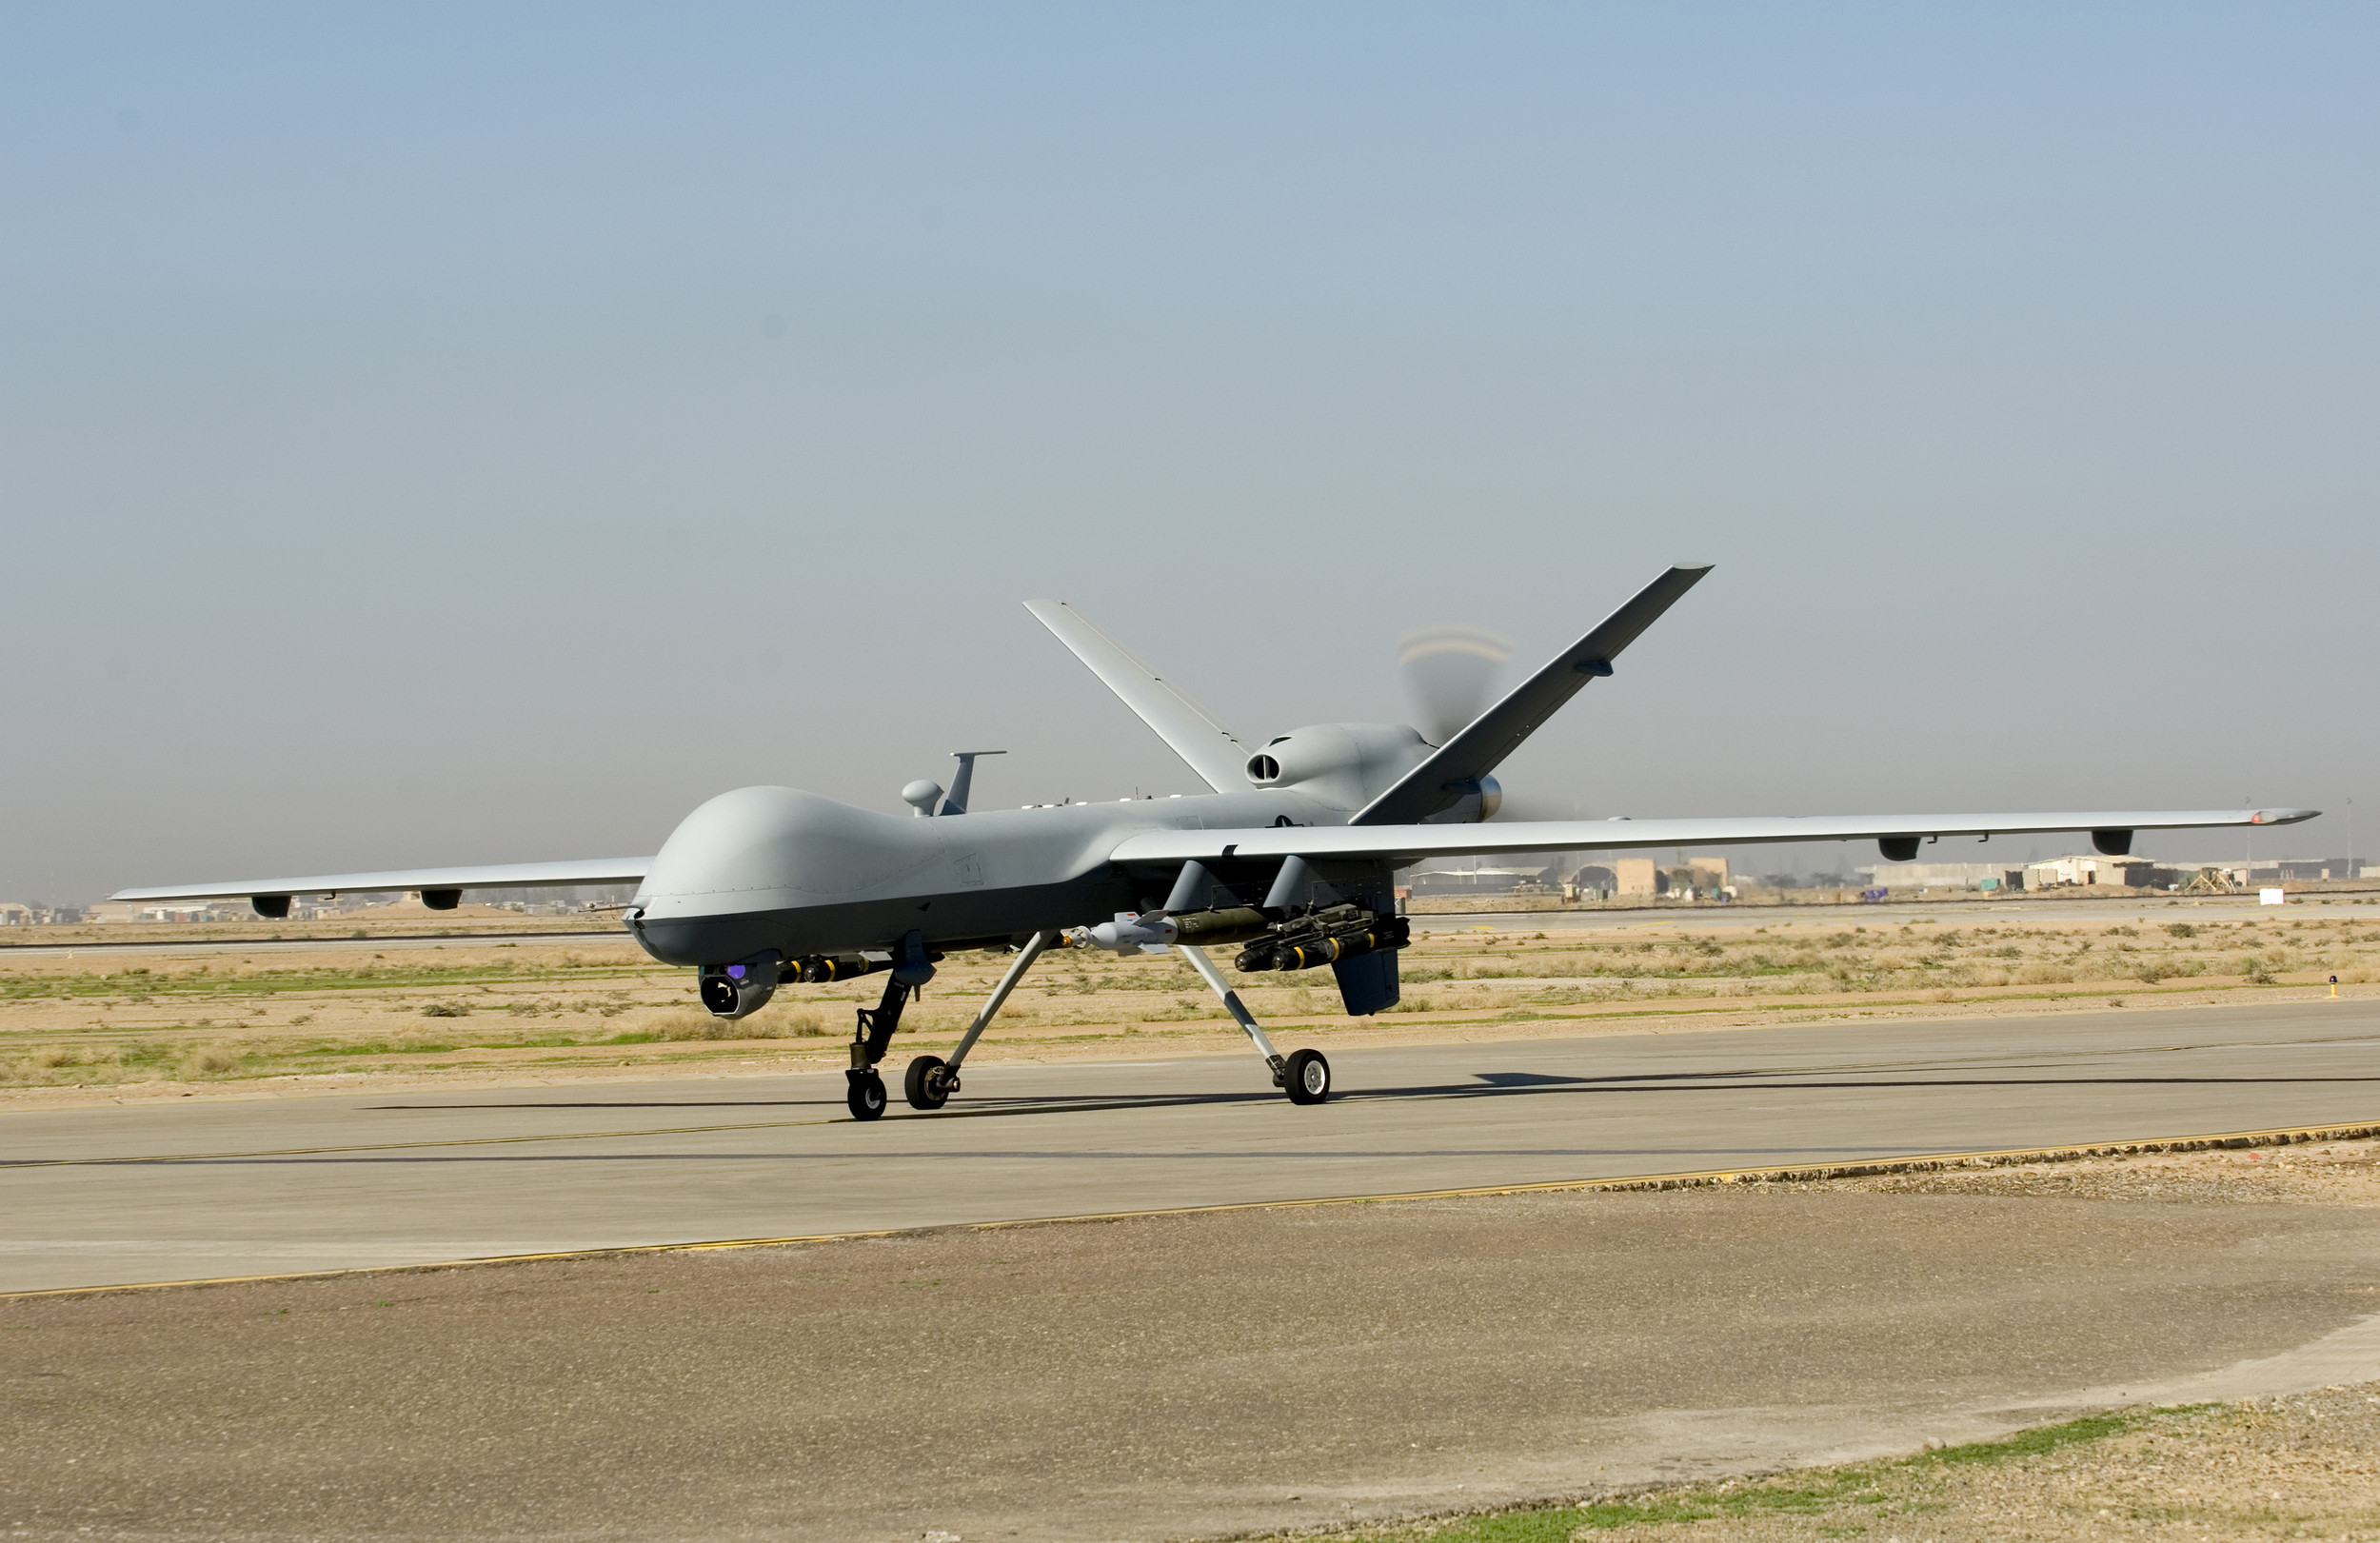 US drones make temporary move to Black Sea region